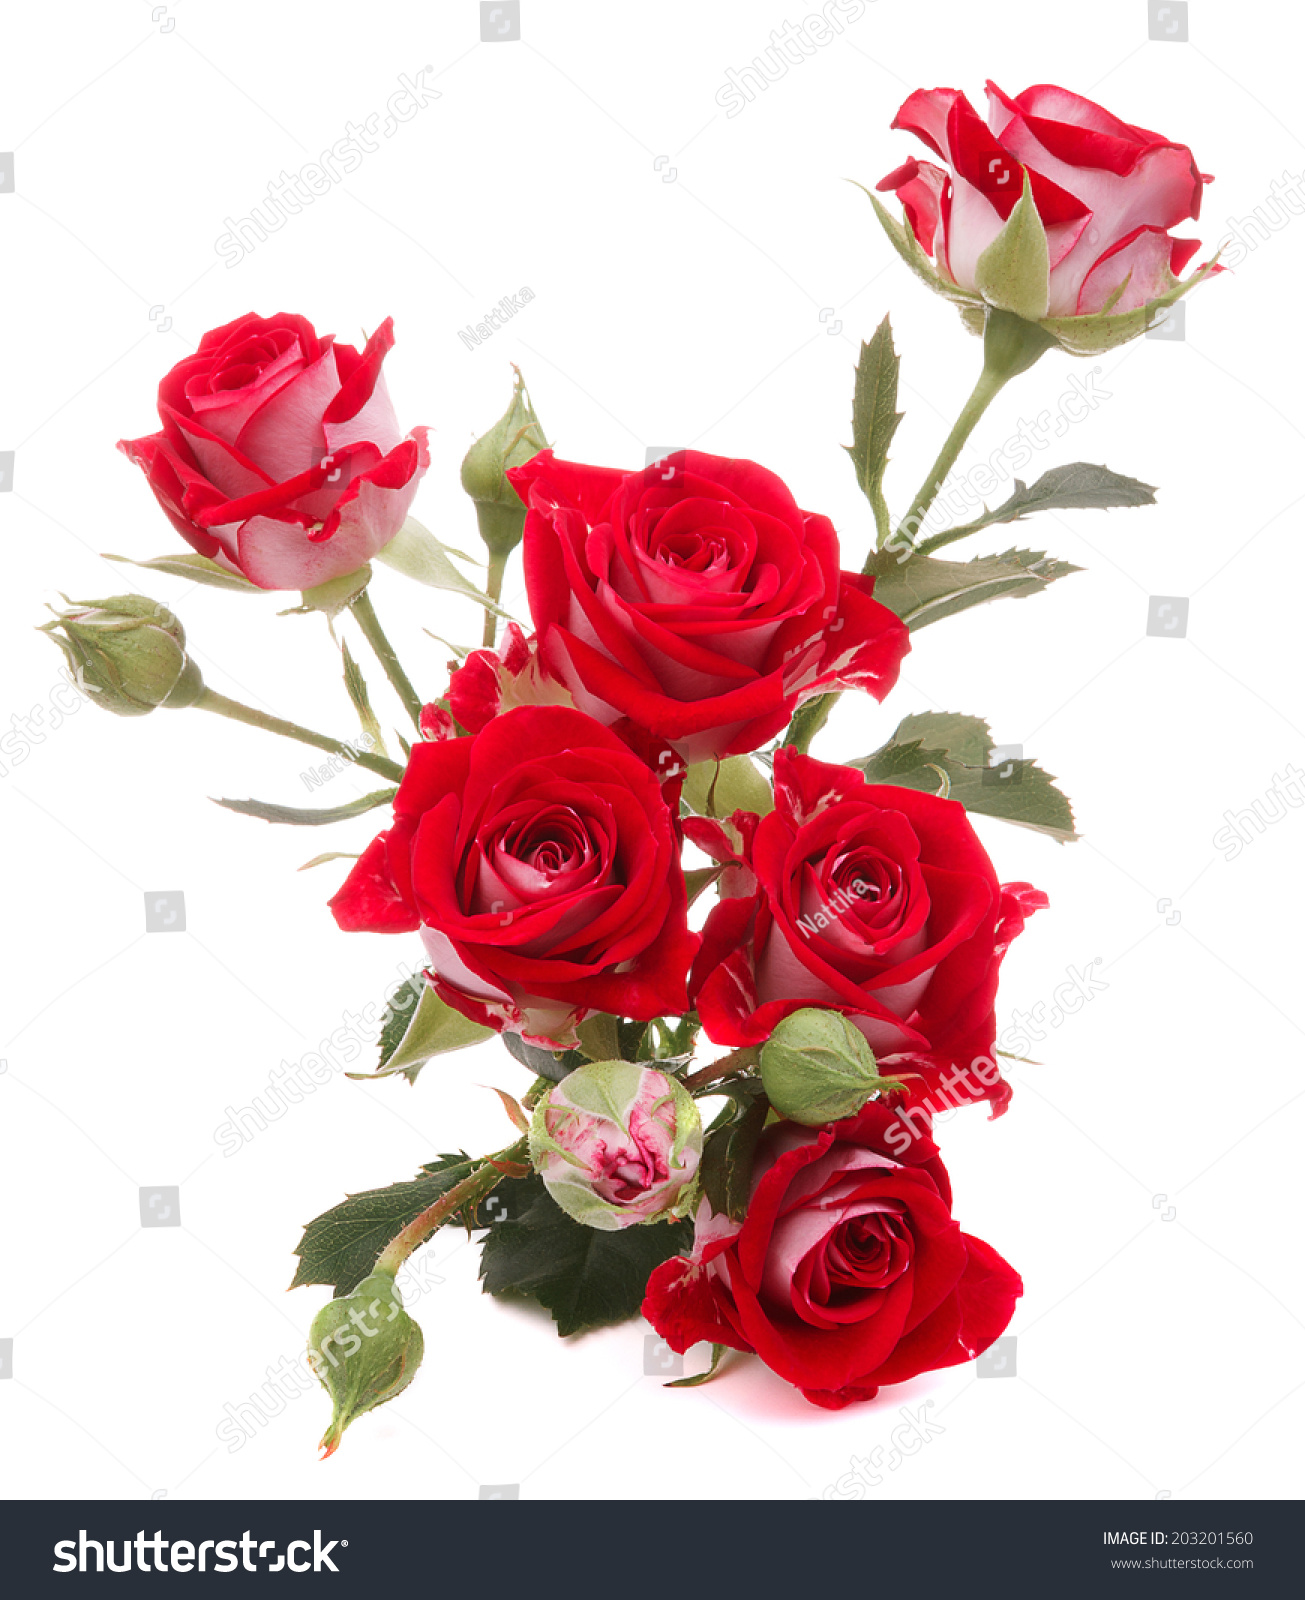 Red Rose Flower Bouquet Isolated On White Background Cutout Ez Canvas